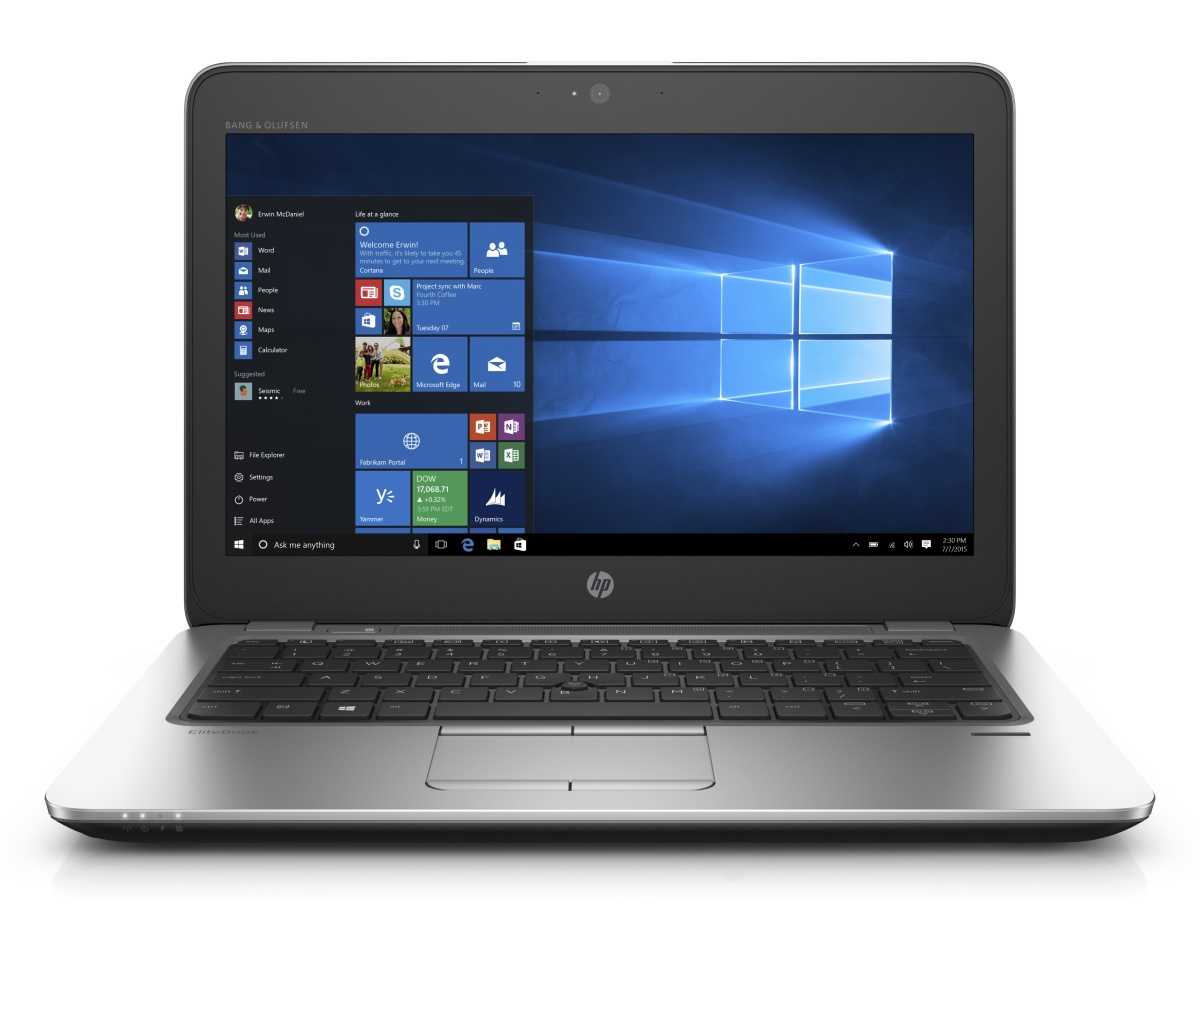 "HP EliteBook 820 G3 i7-6500U/8GB/256GB SSD/12.5"" FHD/ backlit keyb /Win 10 Pro downgraded"